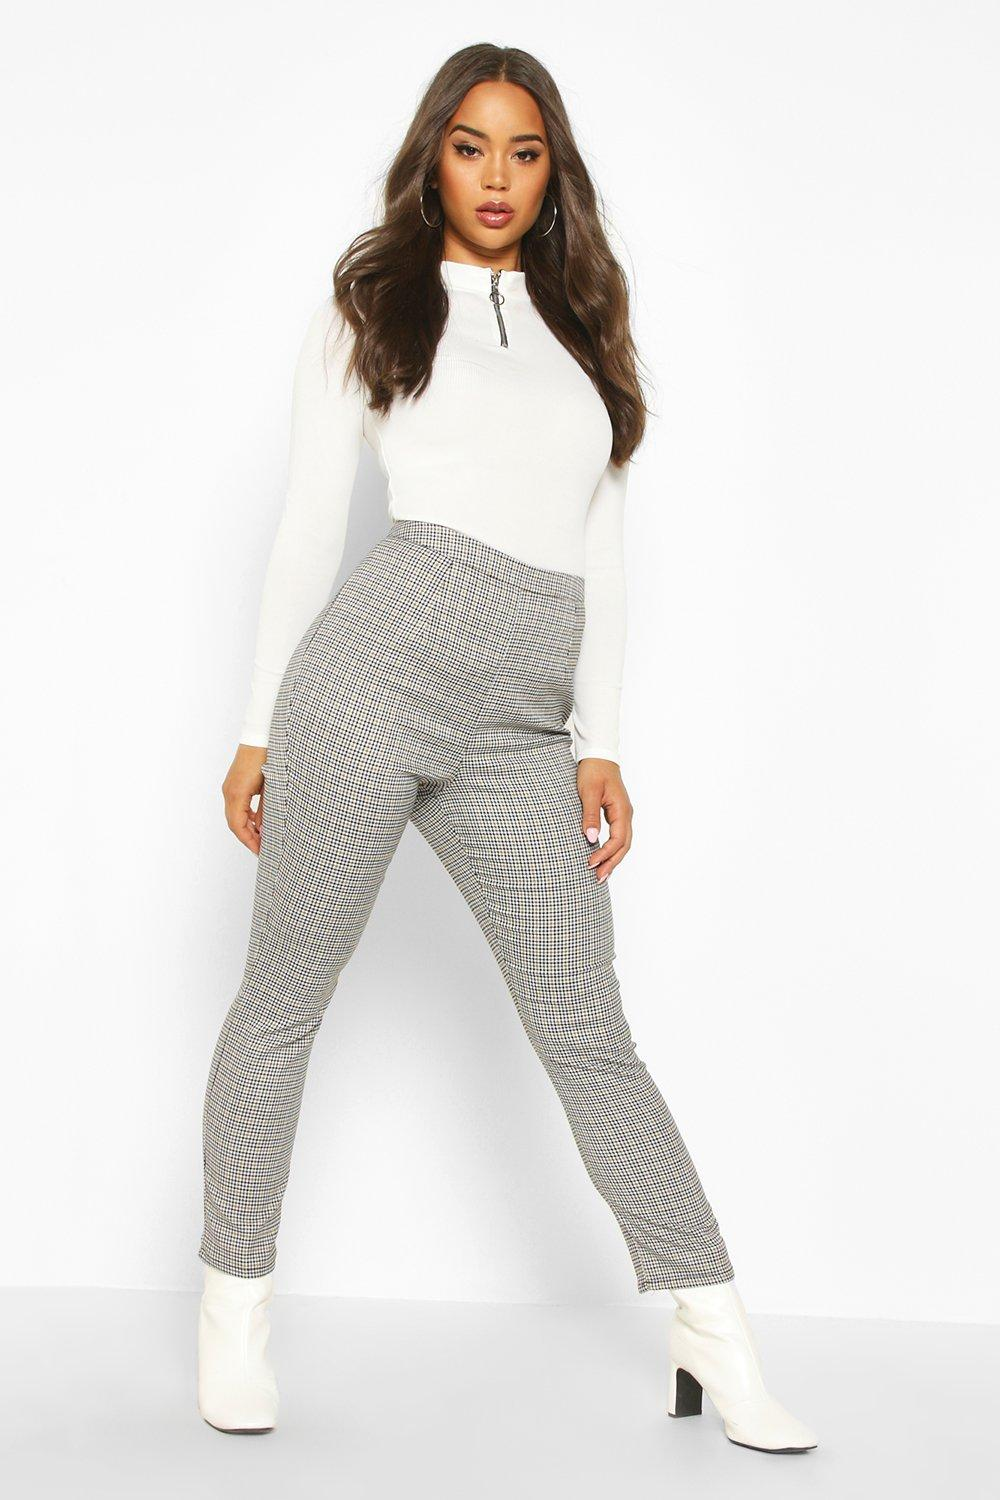 Vintage High Waisted Trousers, Sailor Pants, Jeans Mini Dogtooth Check Slim Fit Woven Trouser $25.00 AT vintagedancer.com